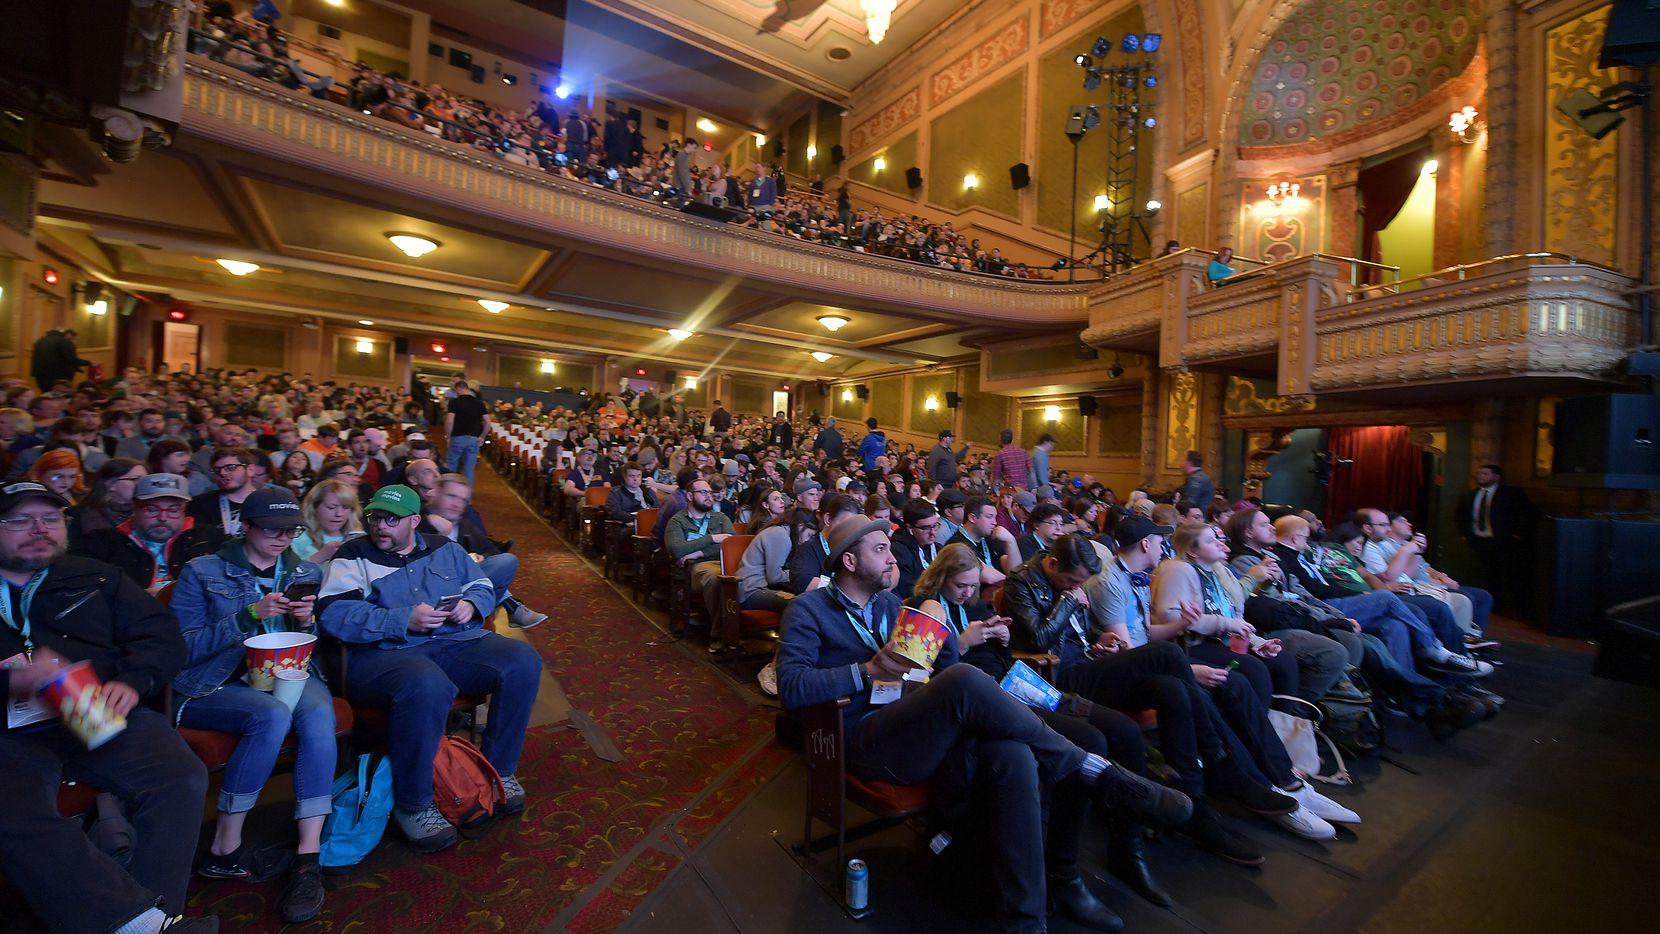 In this file photo from last season's SXSW Conference it shows the audience viewing the 'Pet Sematary' Premiere at the packed Paramount Theatre on March 16, 2019 in Austin, Texas.